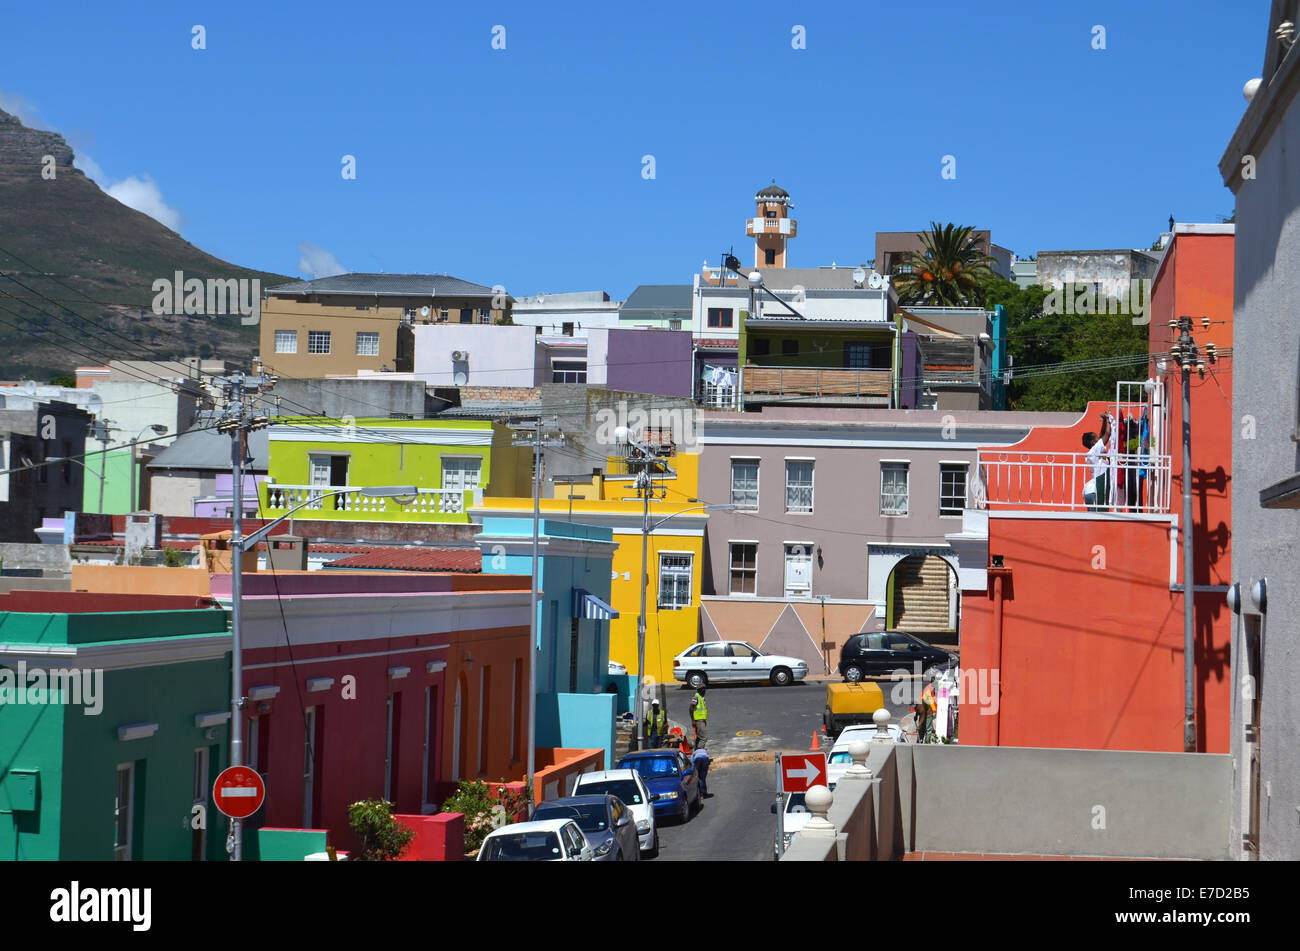 Brightly coloured houses in Bo Kaap, muslim community in Cape Town, South Africa. 2014 - Stock Image